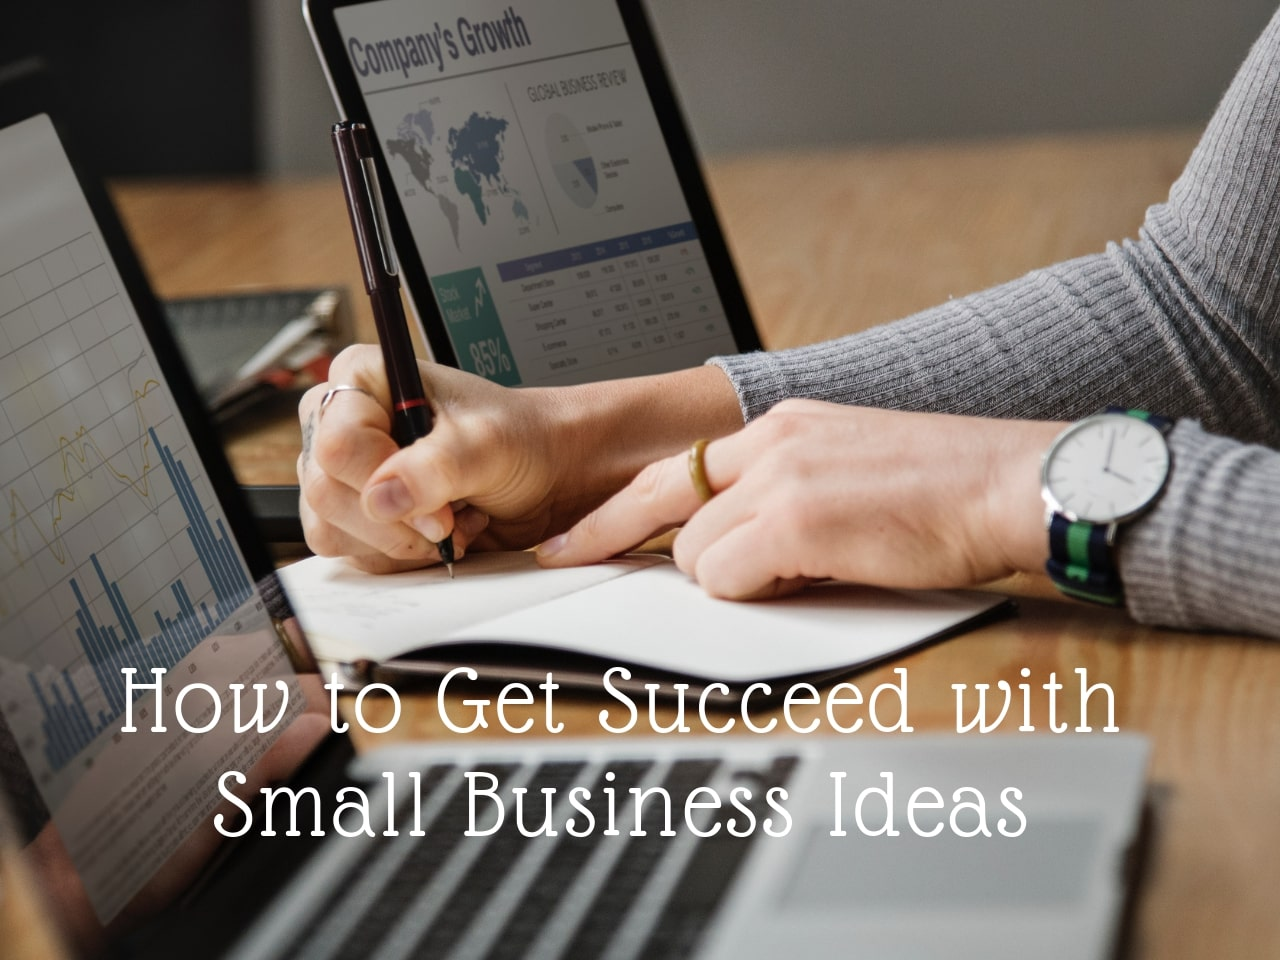 How-to-Get-Succeed-with-Small-Business-Ideas